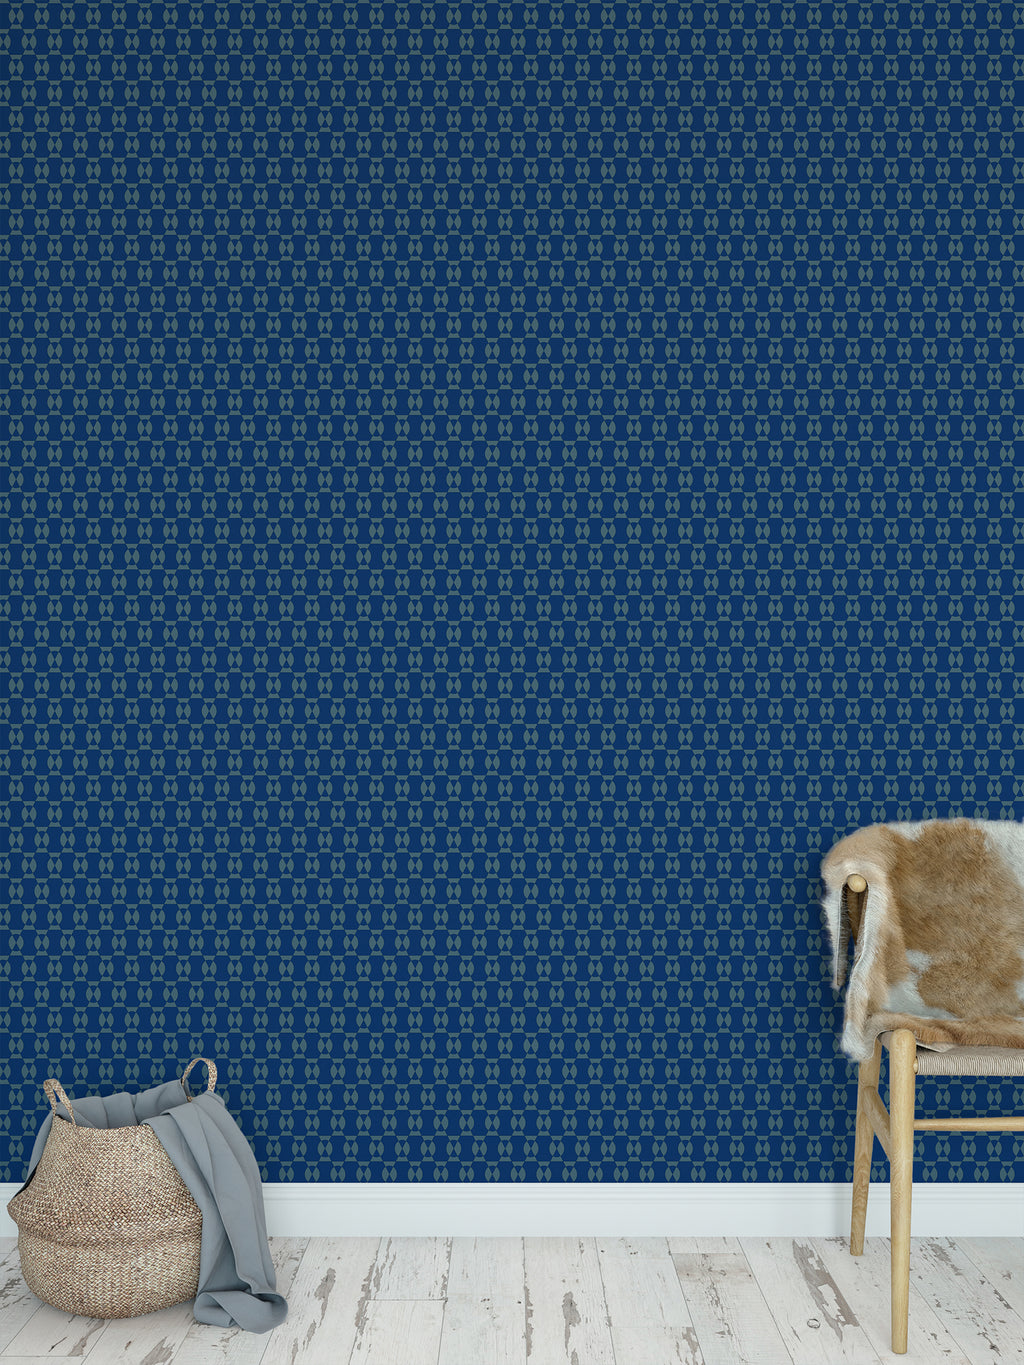 JOYFUL BLUE SMALLSCALE Peel and Stick Wallpaper By Jackie Reynolds